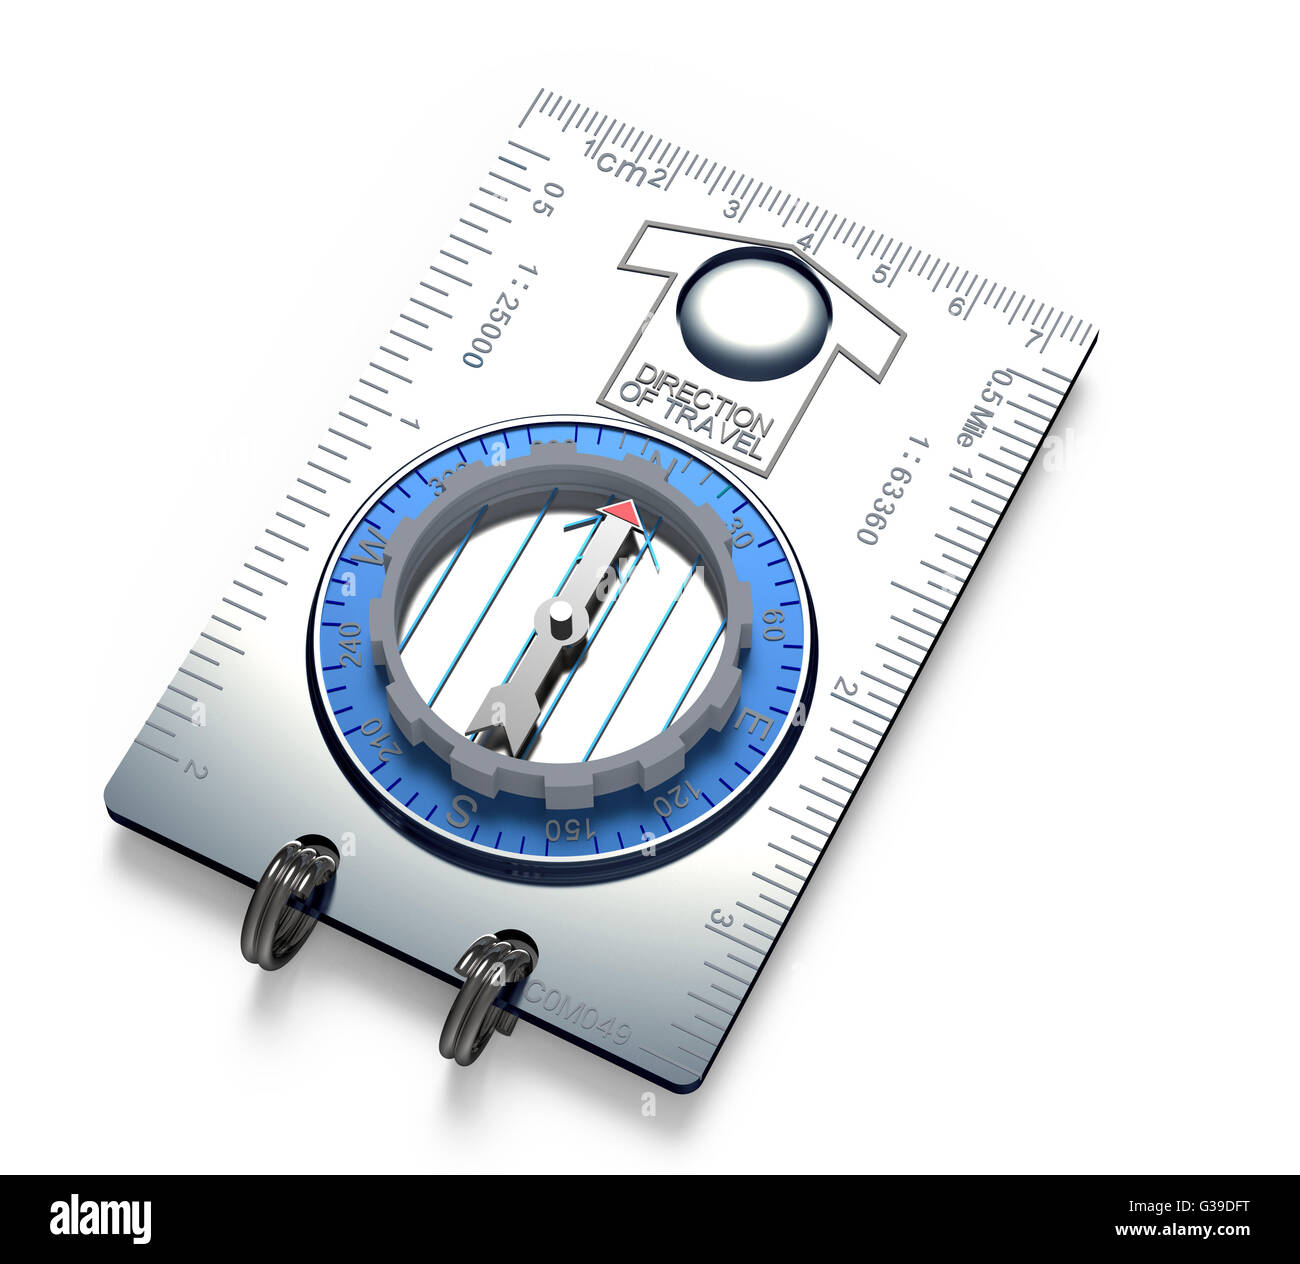 metal compass tool with rulers isolated on white. - Stock Image